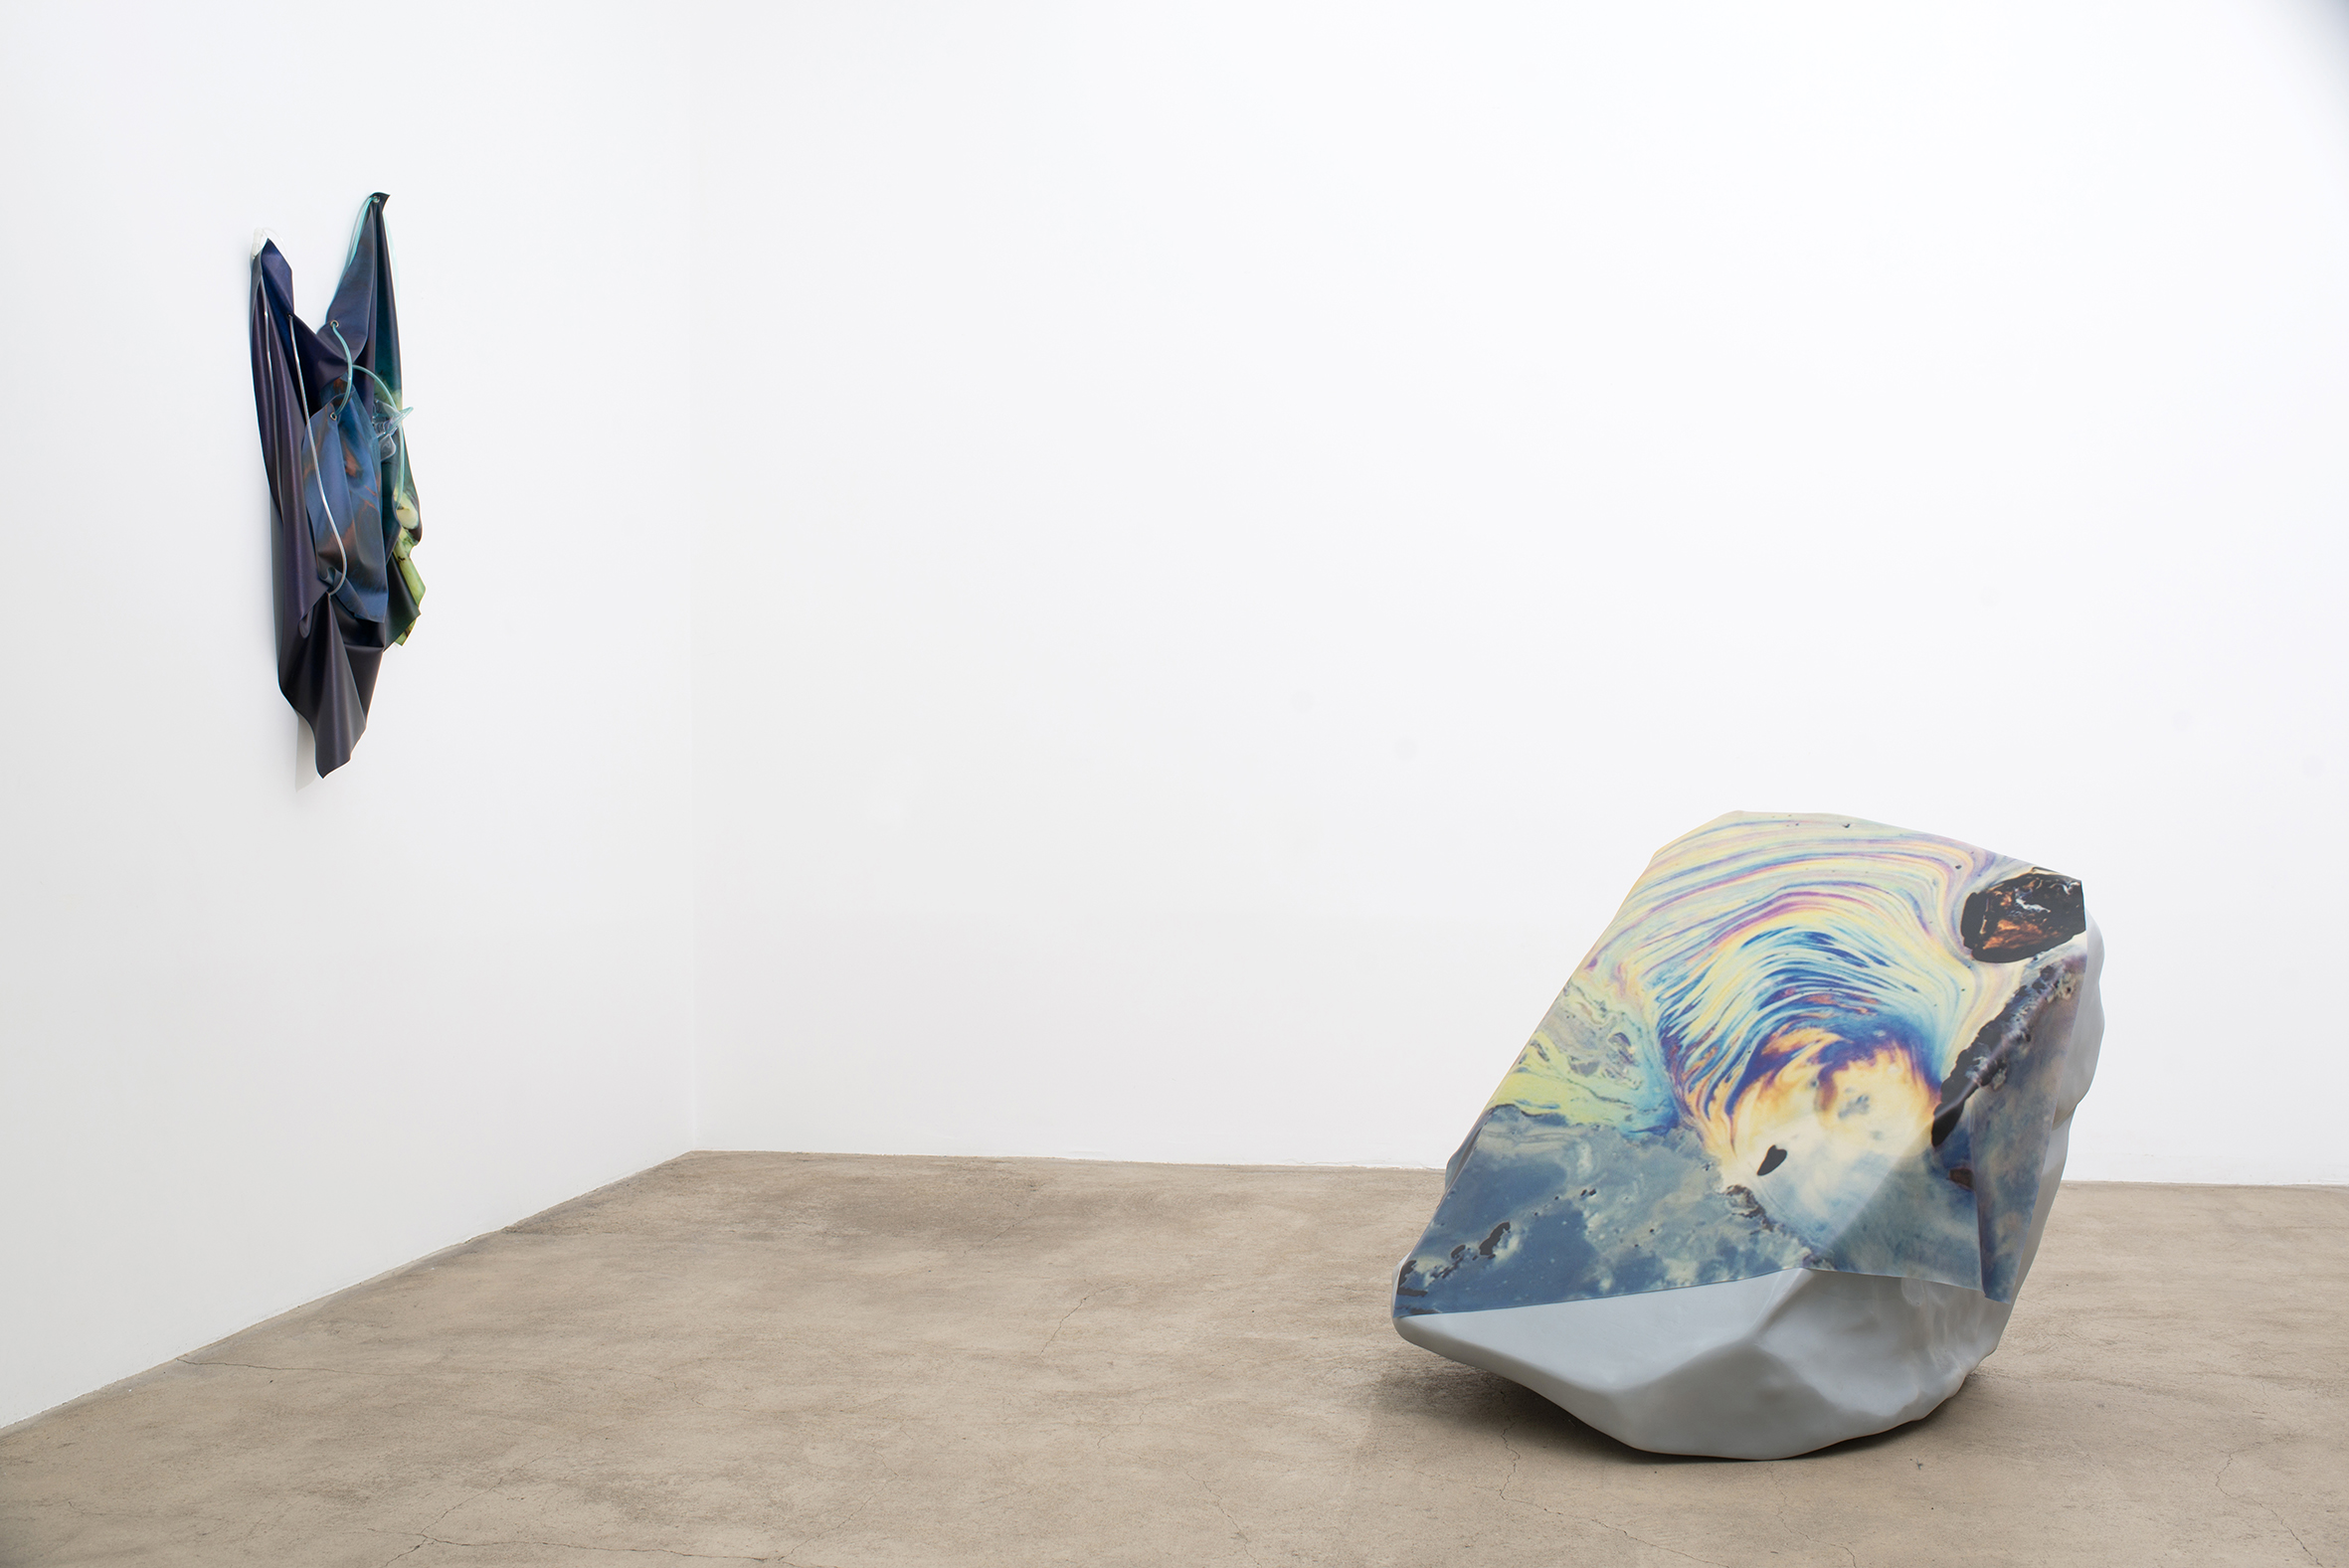 Anouk Kruithof, SCANDALE PROJECT, artist, contemporary artist, emerging artist, art installation, visual art, photography, photographer, art exhibition, exhibition view, creation, artist, contemporary art, Interview, groupshow, group show, art scandal project, scandaleproject,